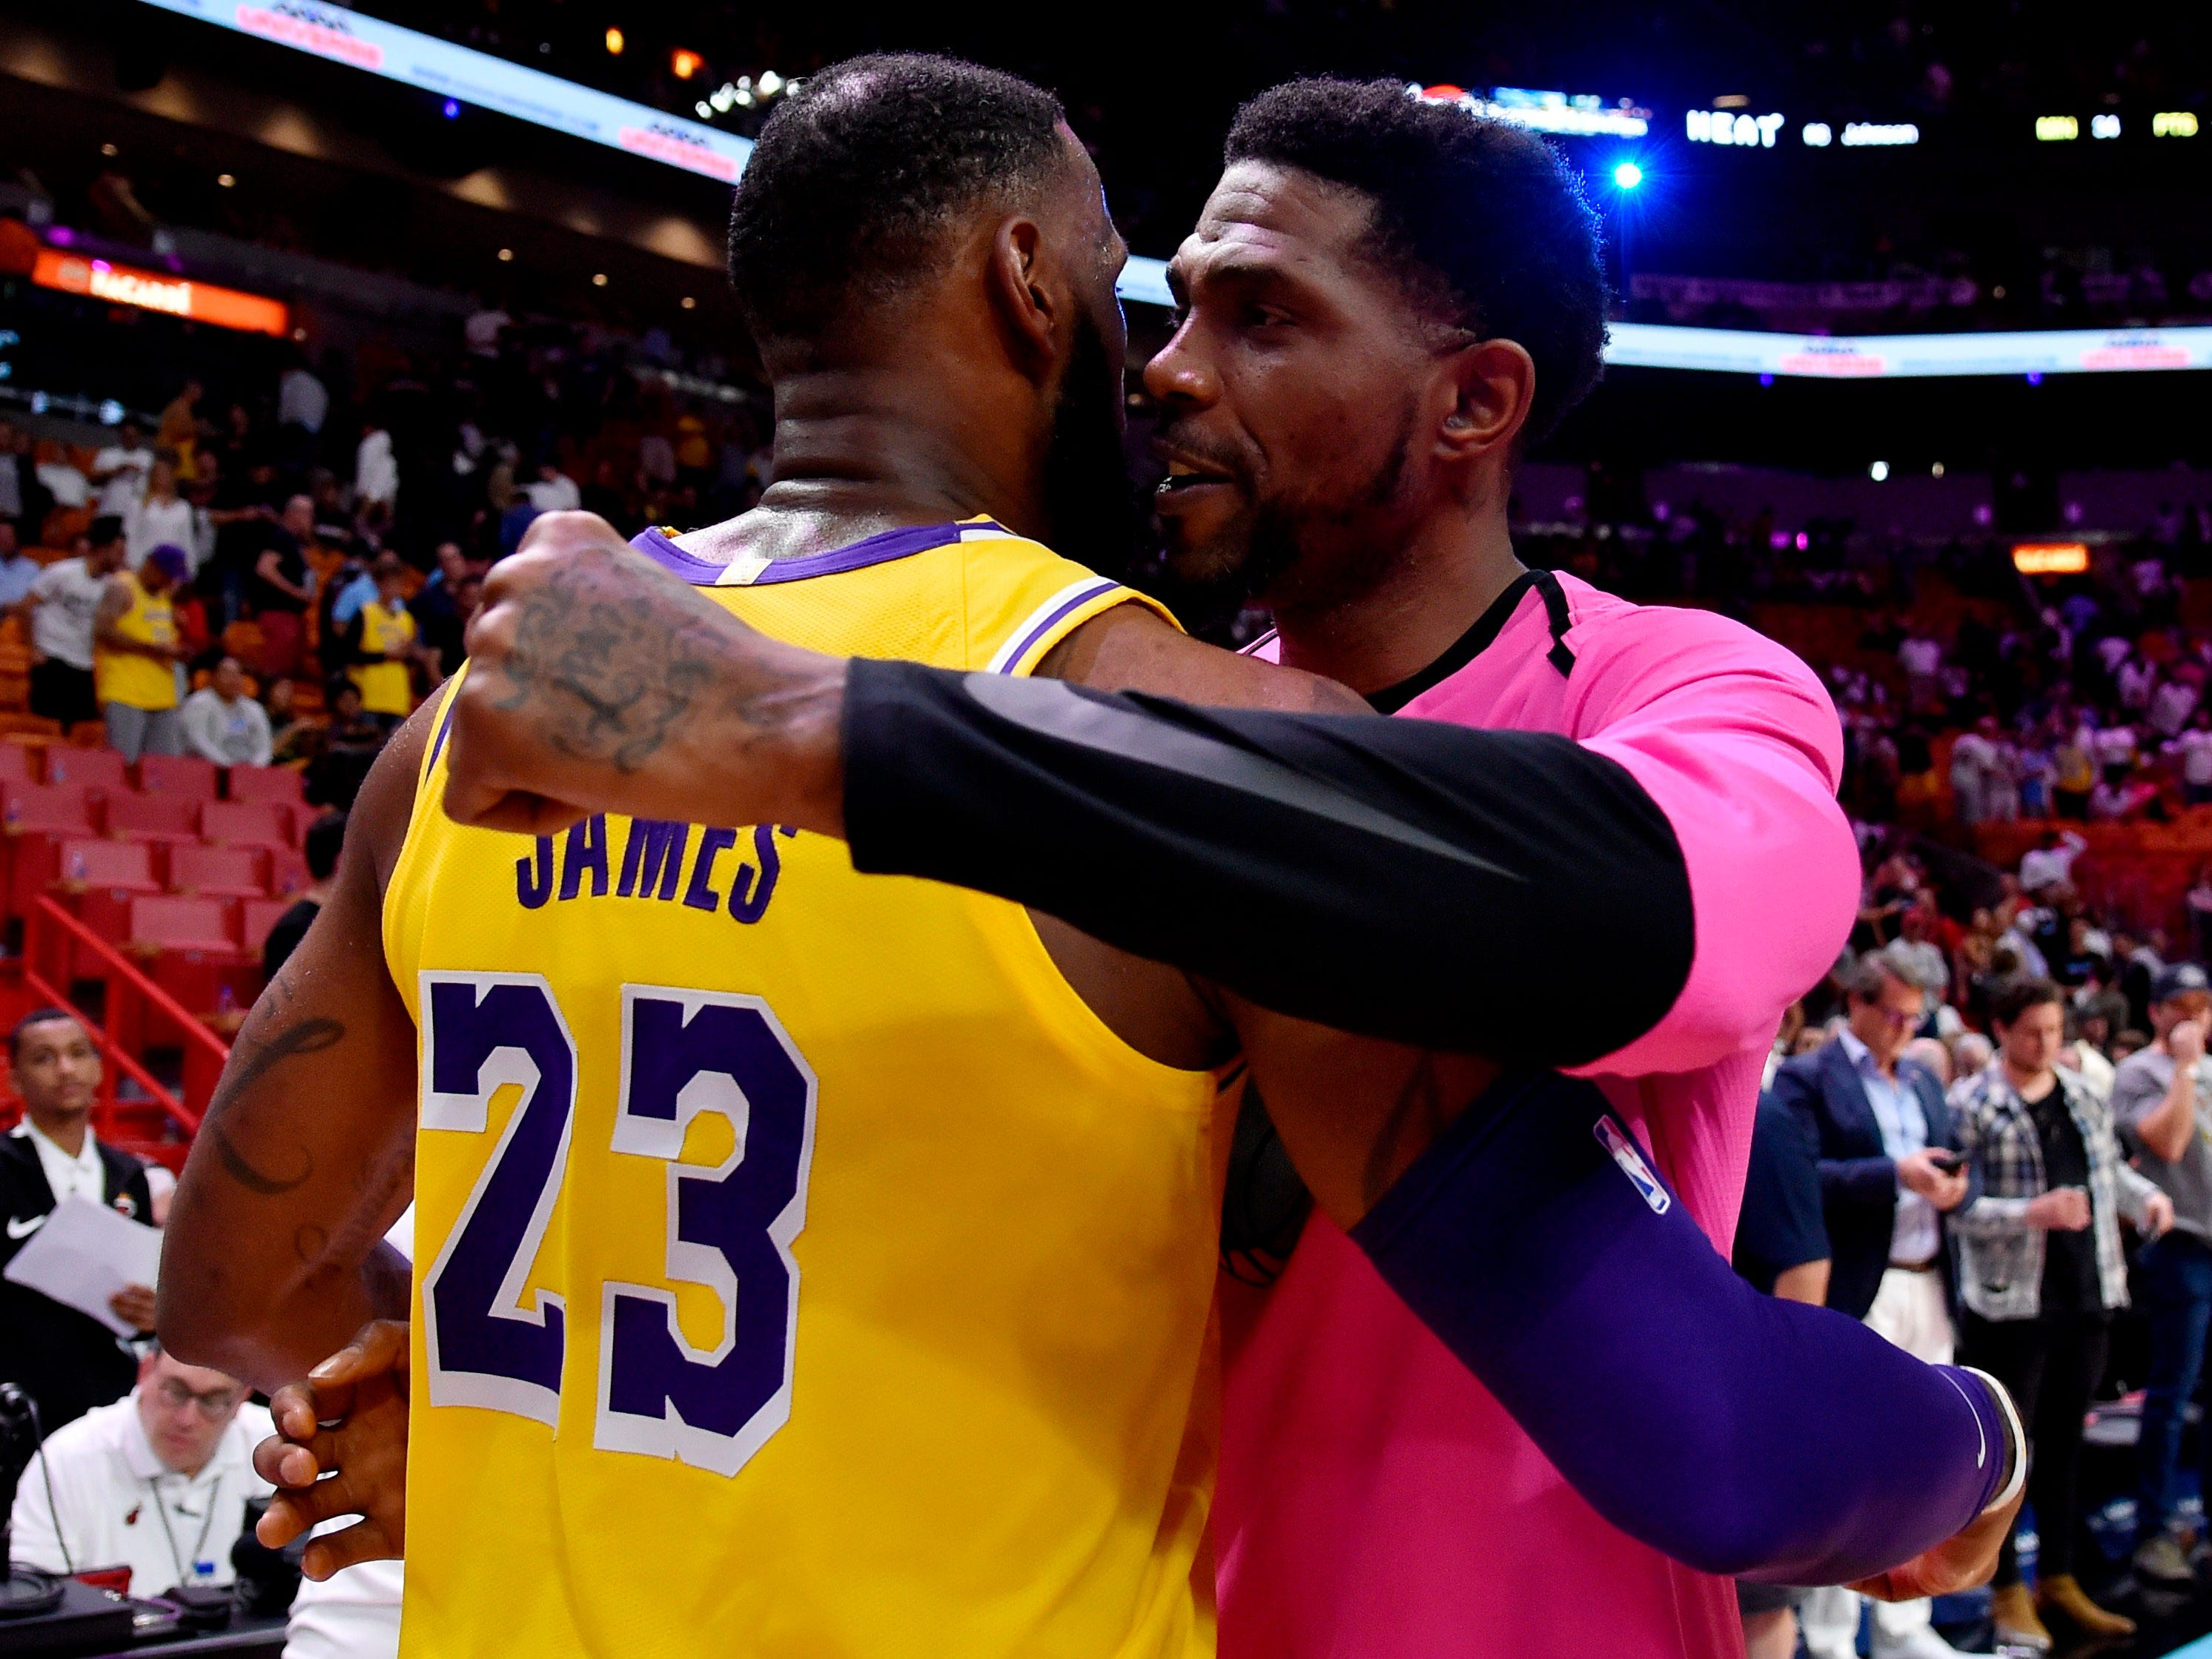 Nov. 18: James gets a hug from former teammate Udonis Haslem before the Lakers play the Heat in Miami. James and Haslem won two title together in 2012 and 2013.